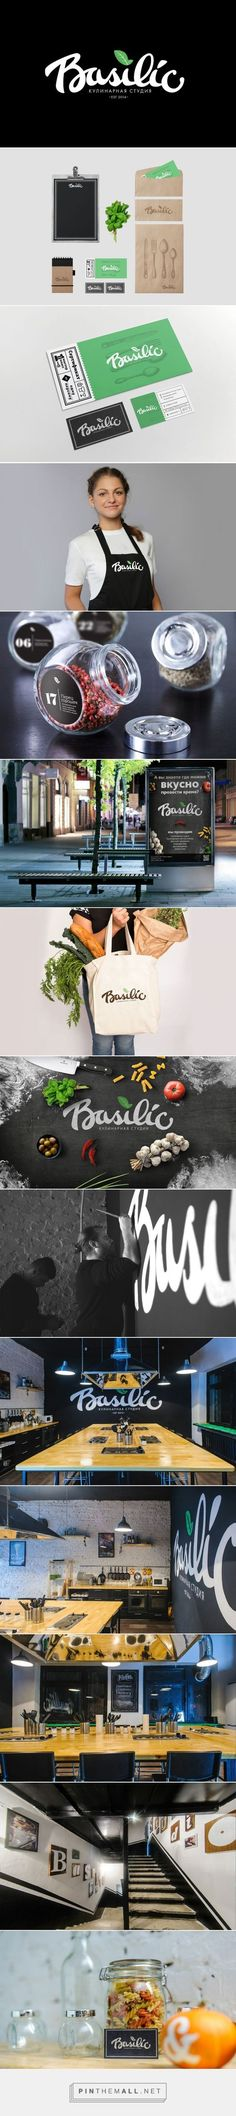 Identity / food / restaurant / Basilic Branding by Stepan Solodkov Fivestar Branding – Design and Branding Agency & Inspiration Gallery Coperate Design, Design Logo, Brand Identity Design, Graphic Design Branding, Menu Design, Brand Design, Design Agency, Stationary Design, Design Ideas